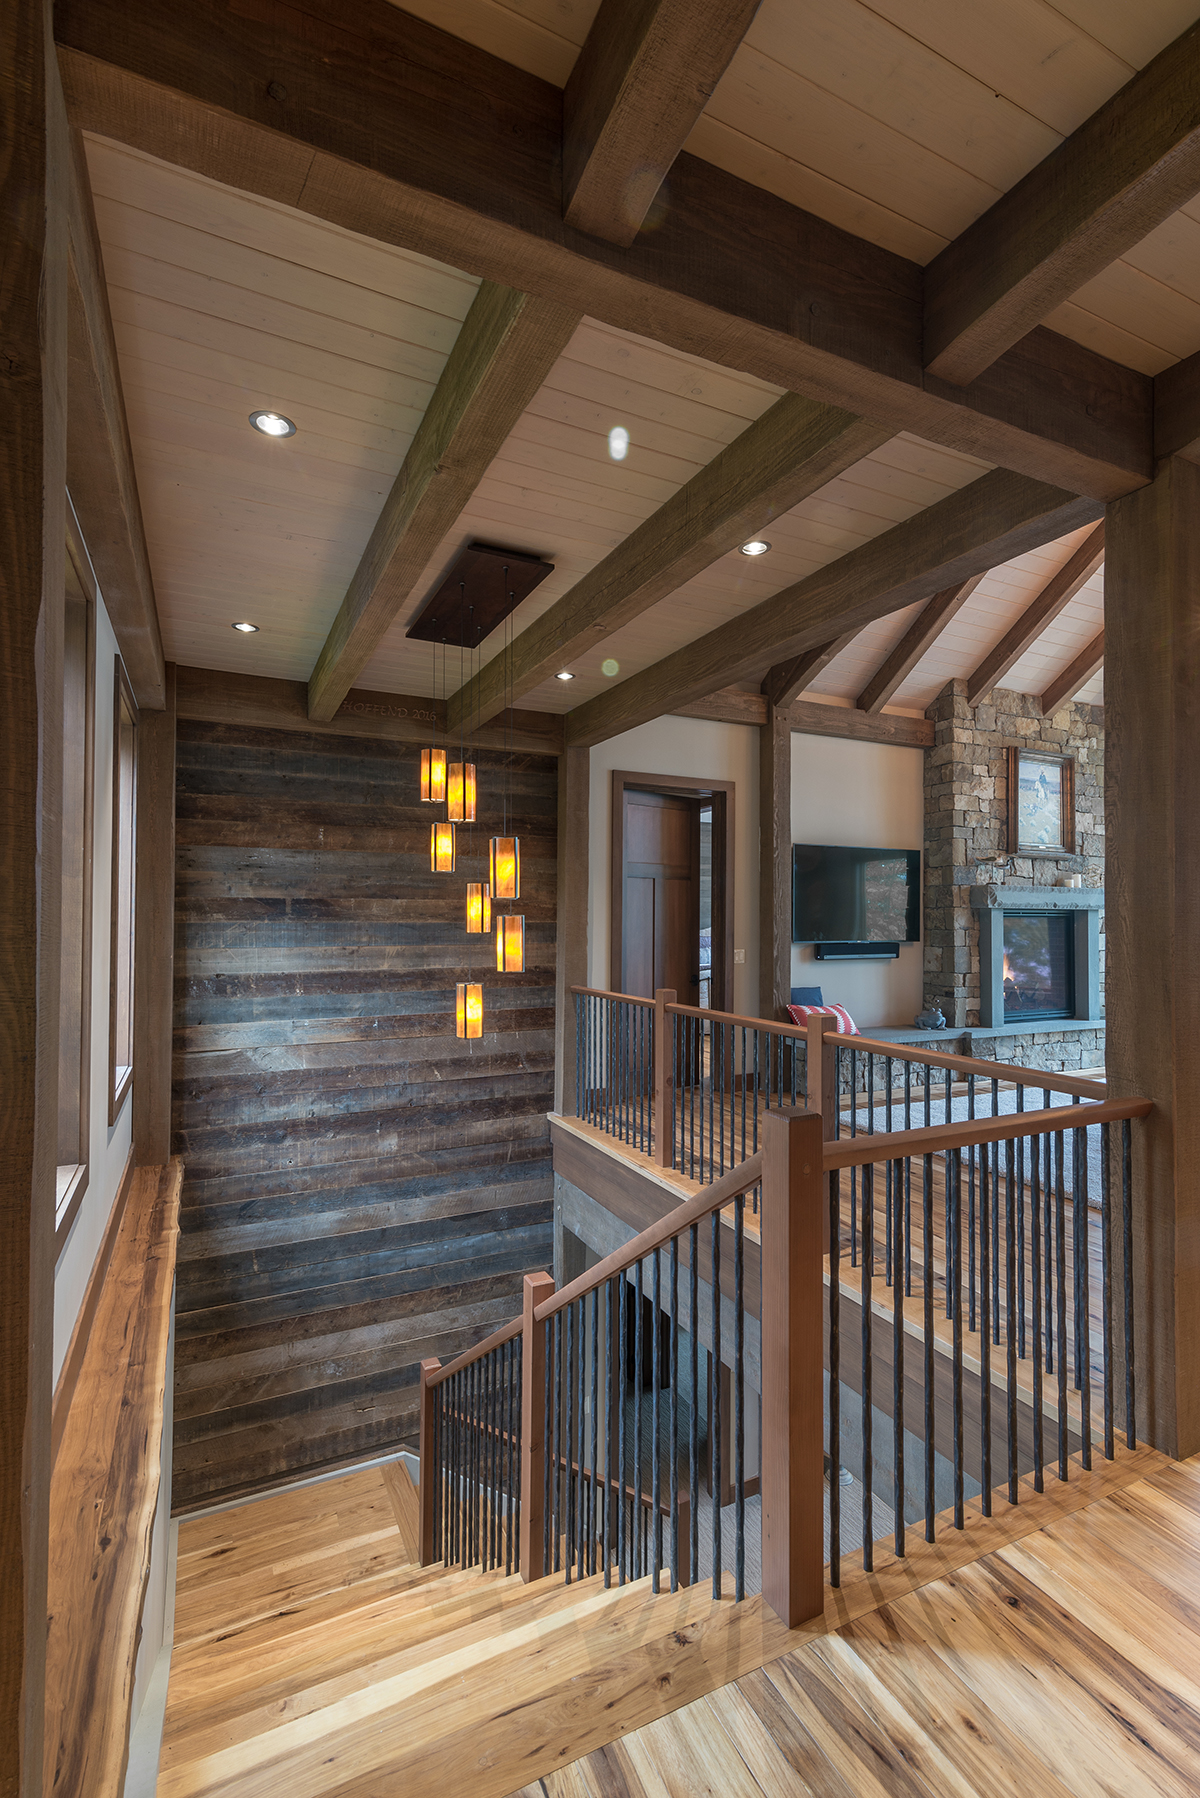 """Stairs are also directional. In this lake home, the stair leads to the lake level and as it turns it delivers you heading towards the lake, suggesting a flow from inside to outside,"" shared Ty. Photo by Scott Hemenway."